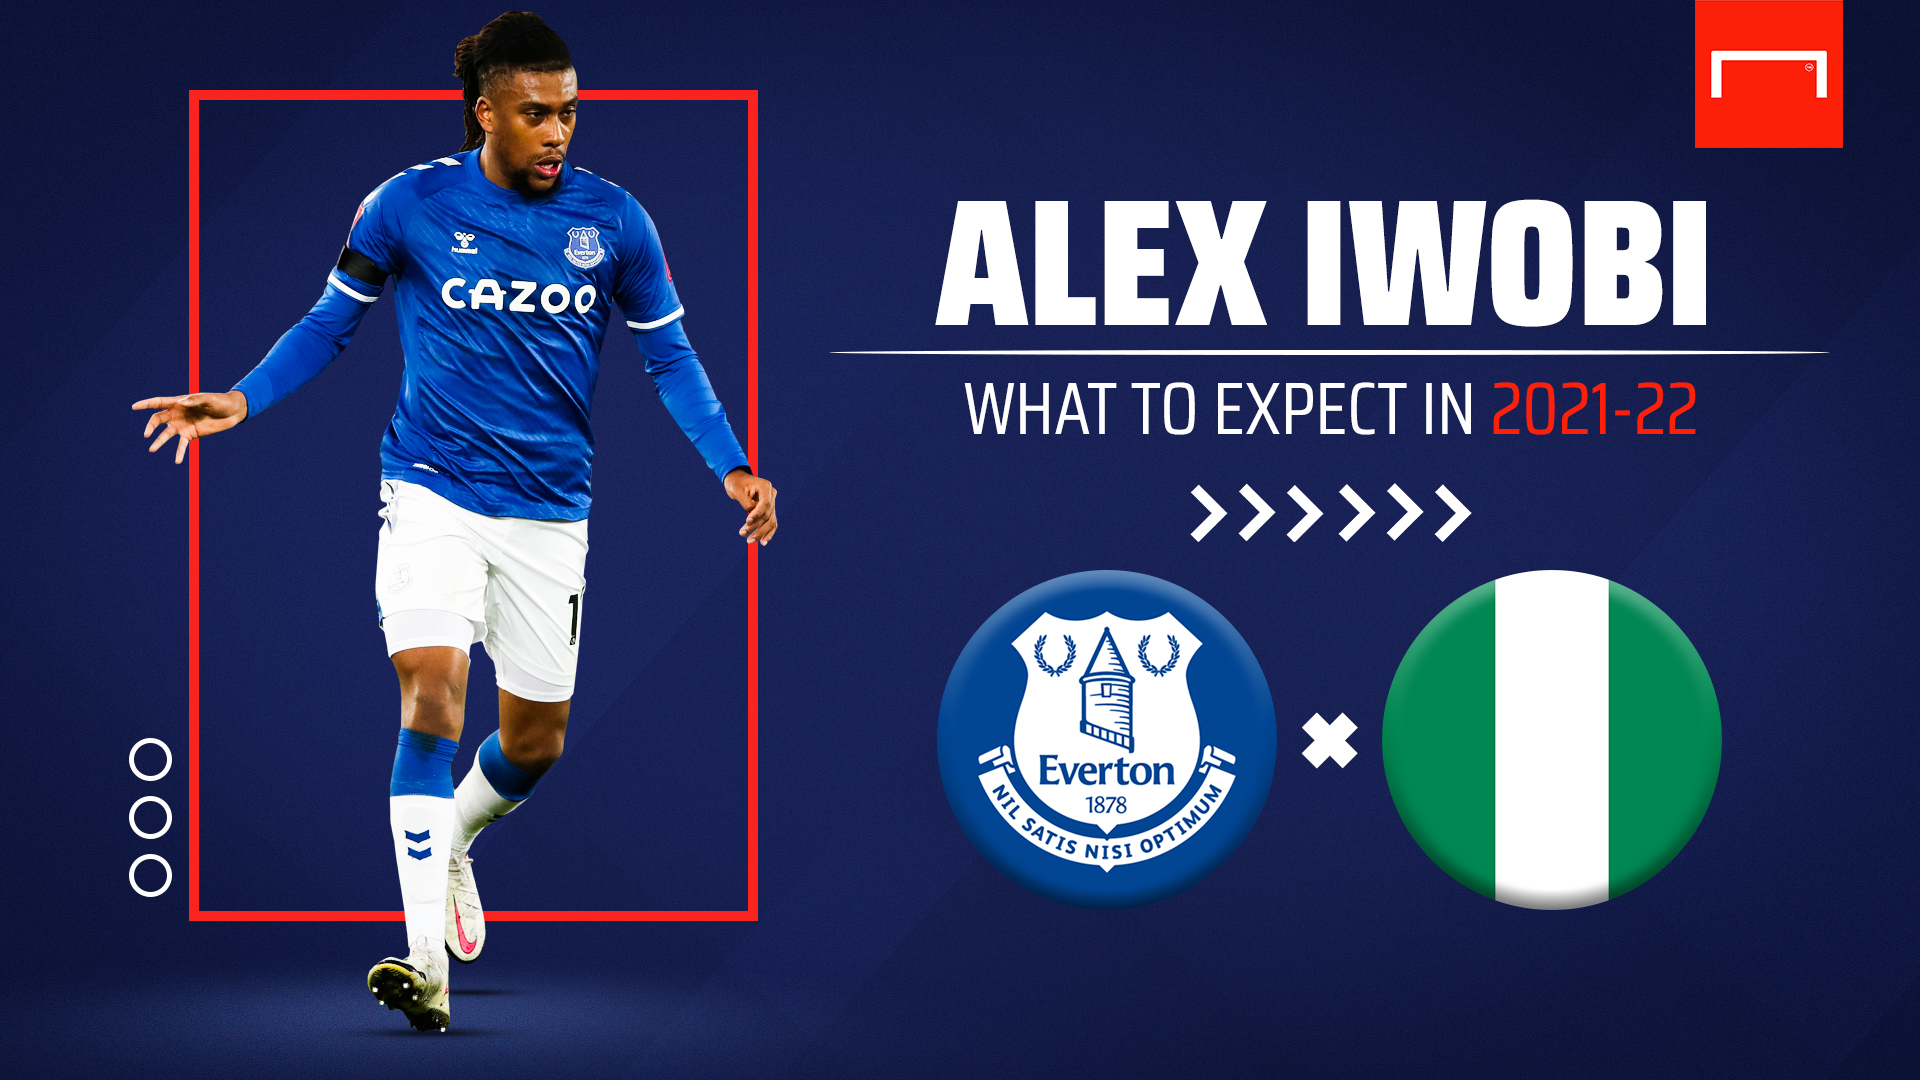 Alex Iwobi: What to expect in 2021-22